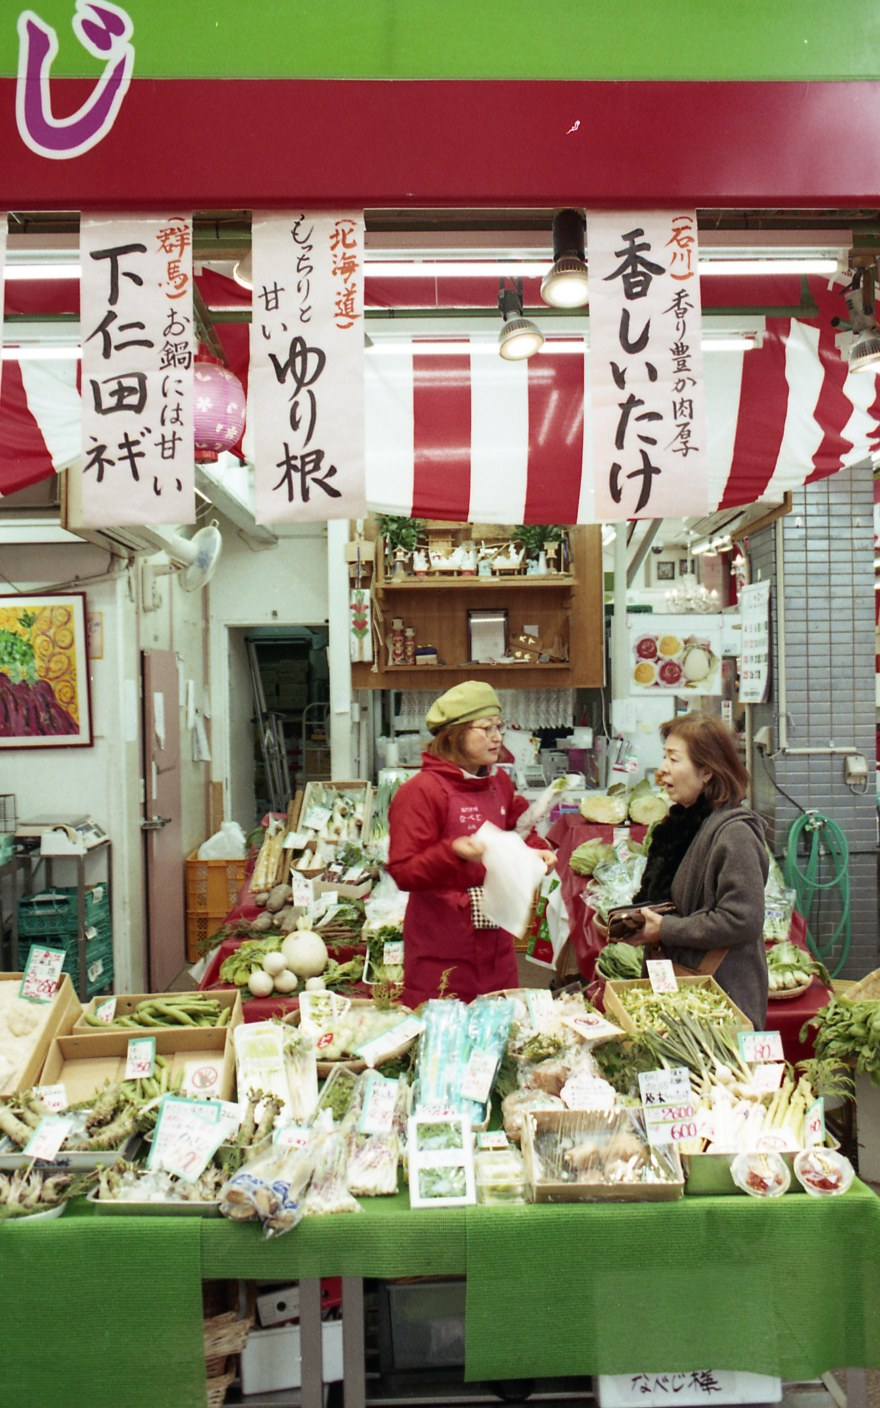 JAPAN Osaka Shitennoji Market FEB2018 Nikon FM2 Fujicolor 100 (Japan Only)-023